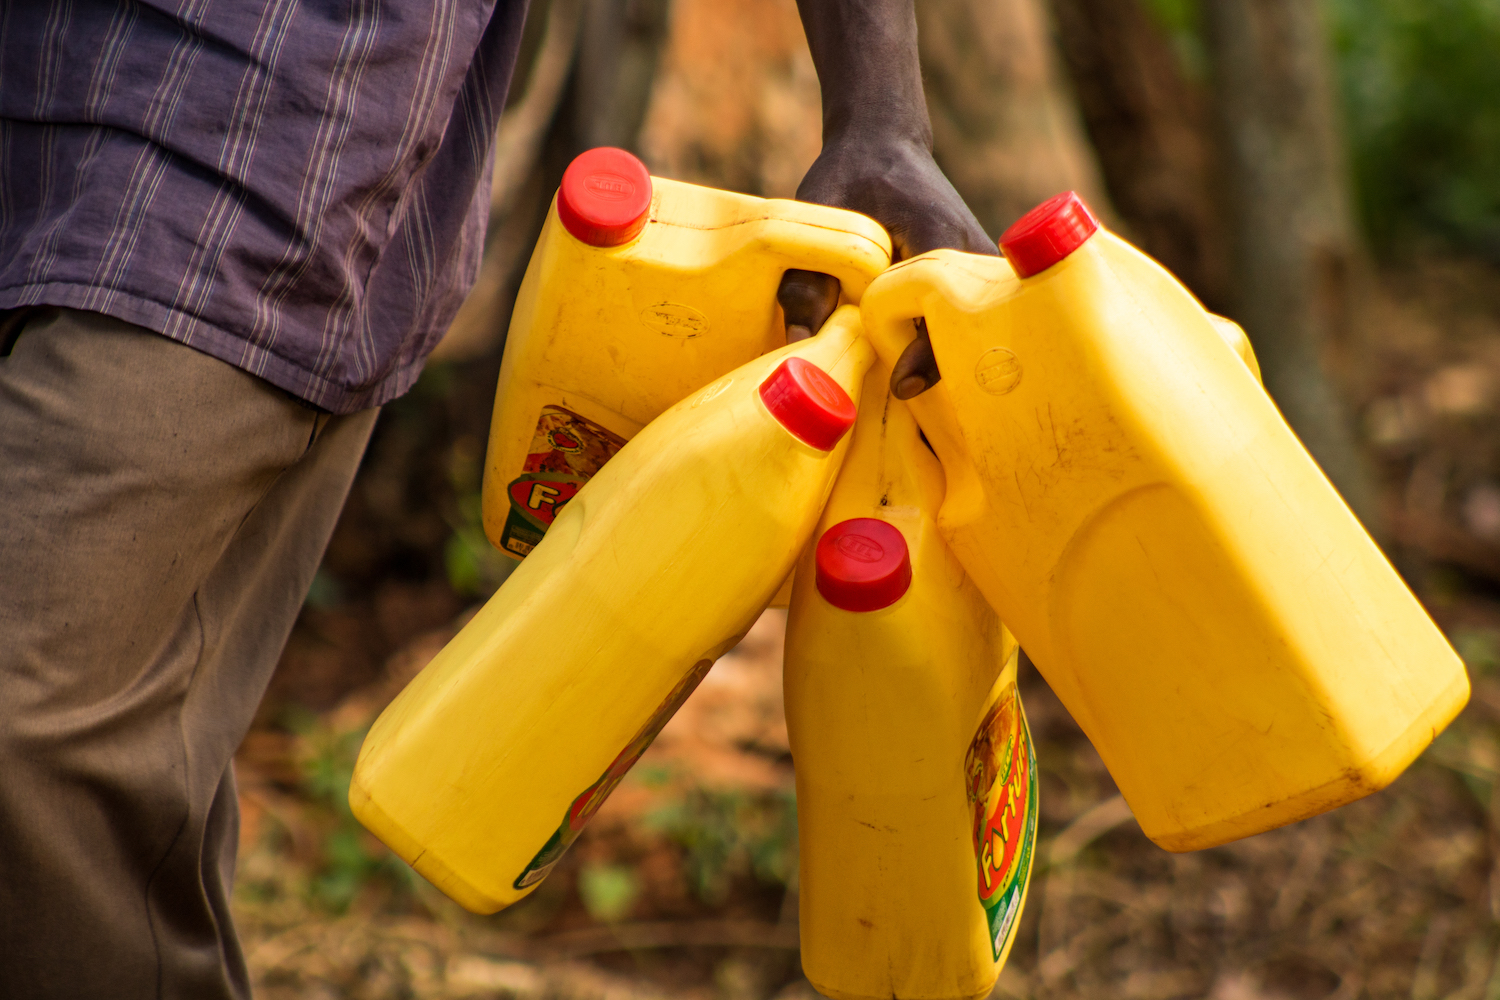 At the end of the triggering, everyone who attended receives a jerrycan and clothesline to build their first handwashing station. The WASH staff empowers people to be creative and build a long-lasting handwashing station that serves their whole family for a long time.